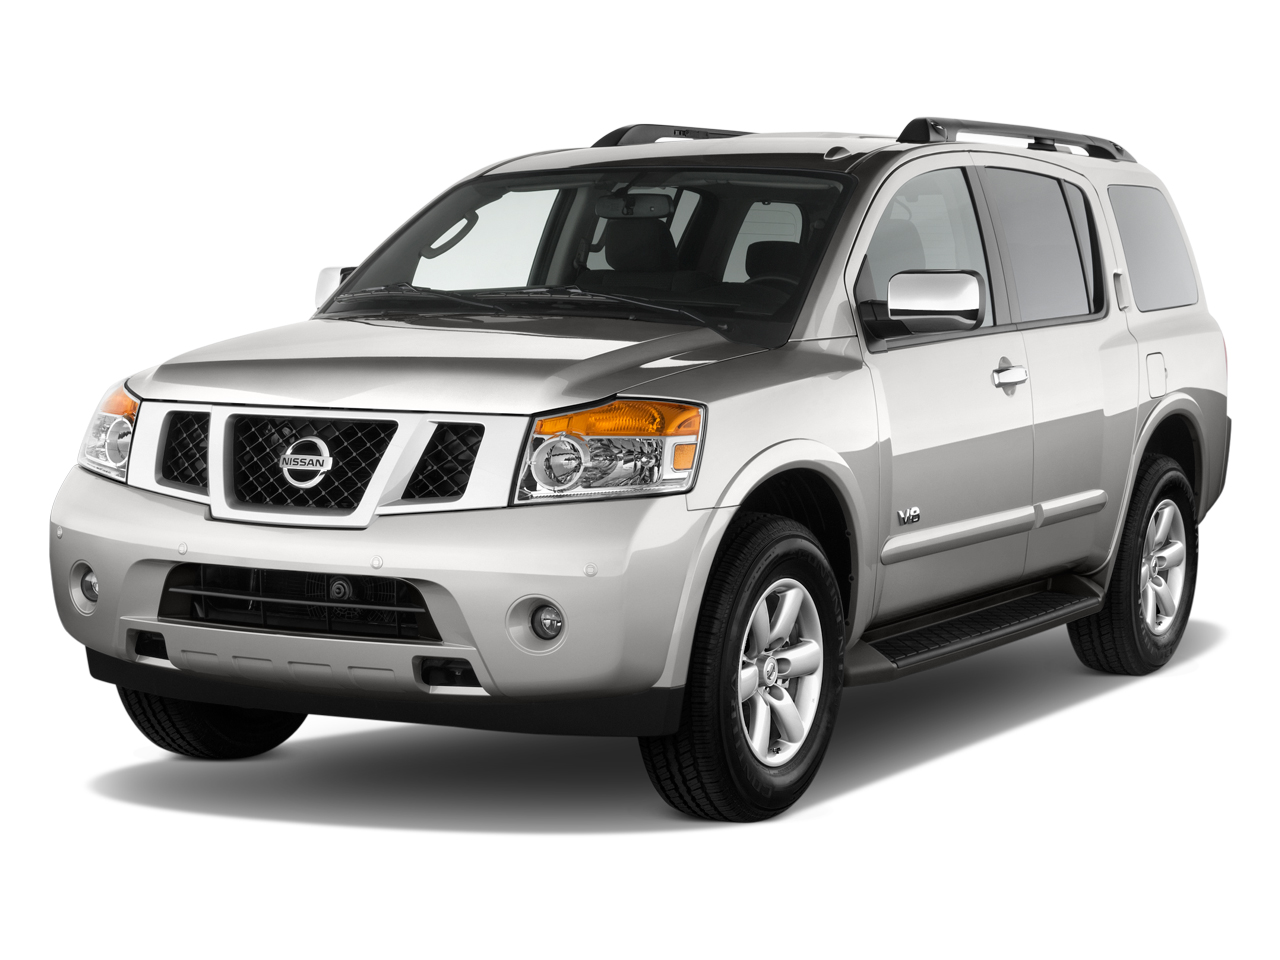 Nissan Armada Towing Capacity >> 2010 Nissan Armada Review Ratings Specs Prices And